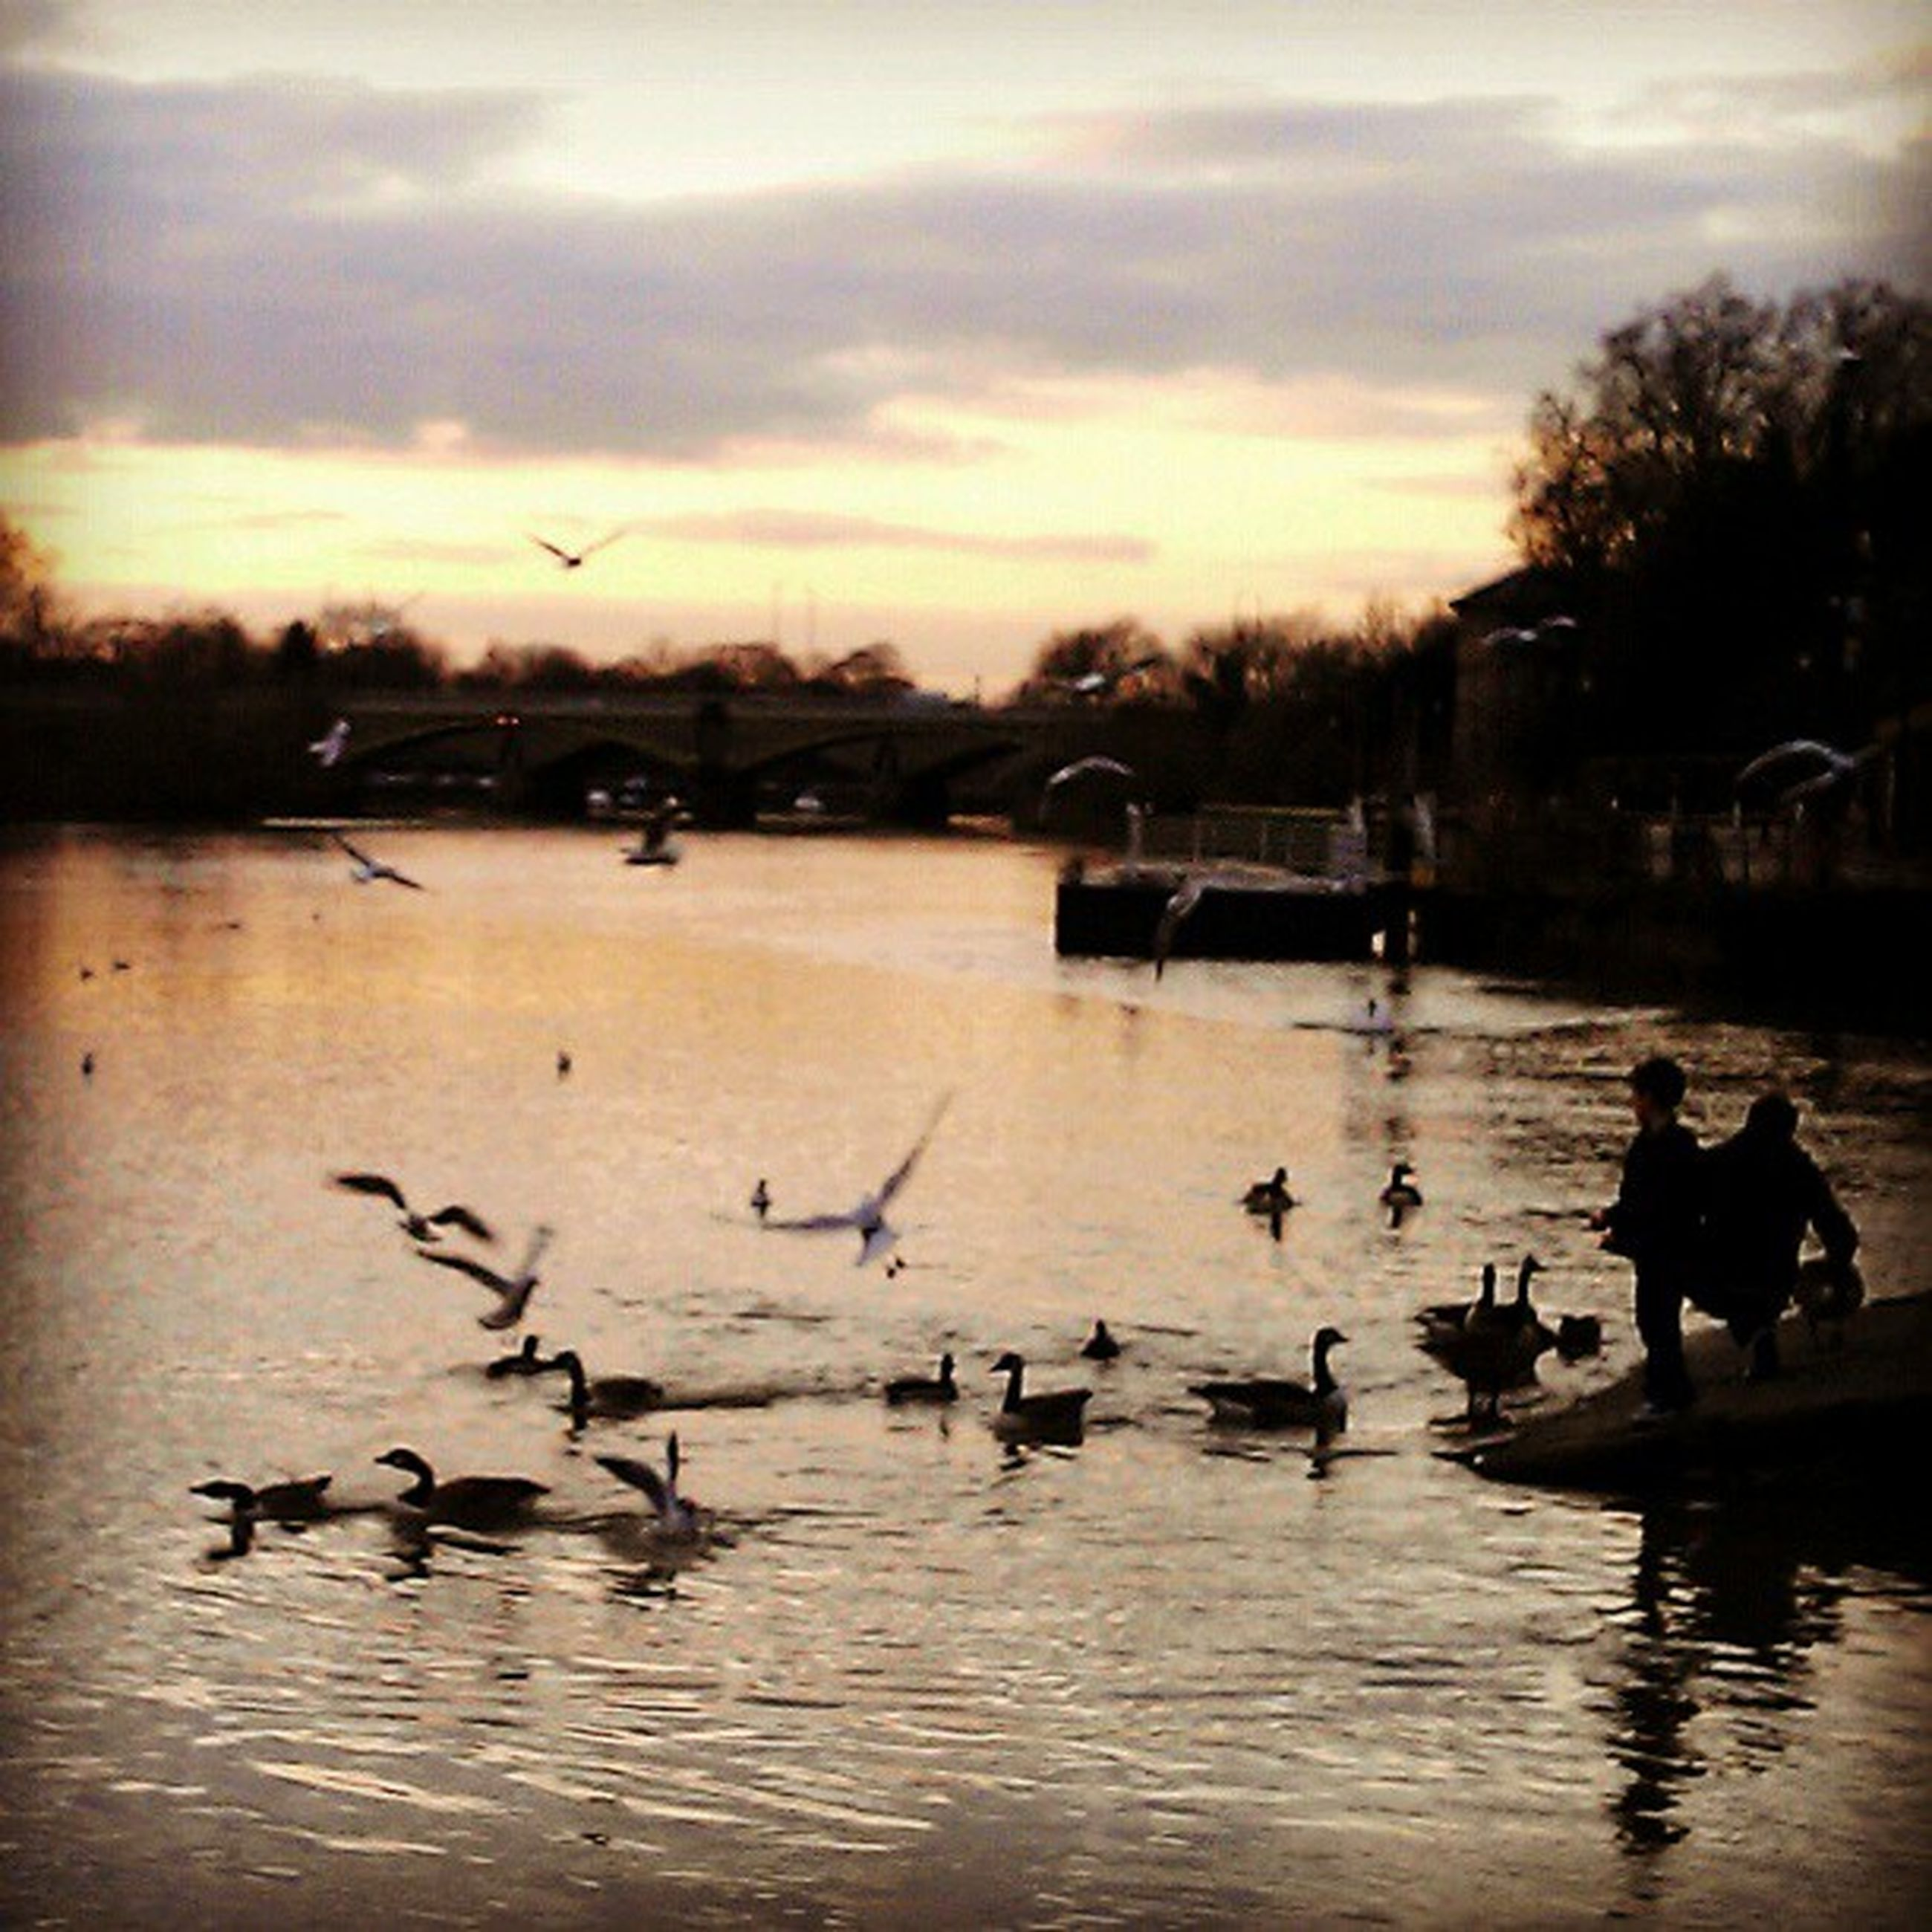 bird, animal themes, water, animals in the wild, wildlife, flock of birds, sky, lake, sunset, duck, reflection, silhouette, cloud - sky, nature, waterfront, tree, swan, flying, swimming